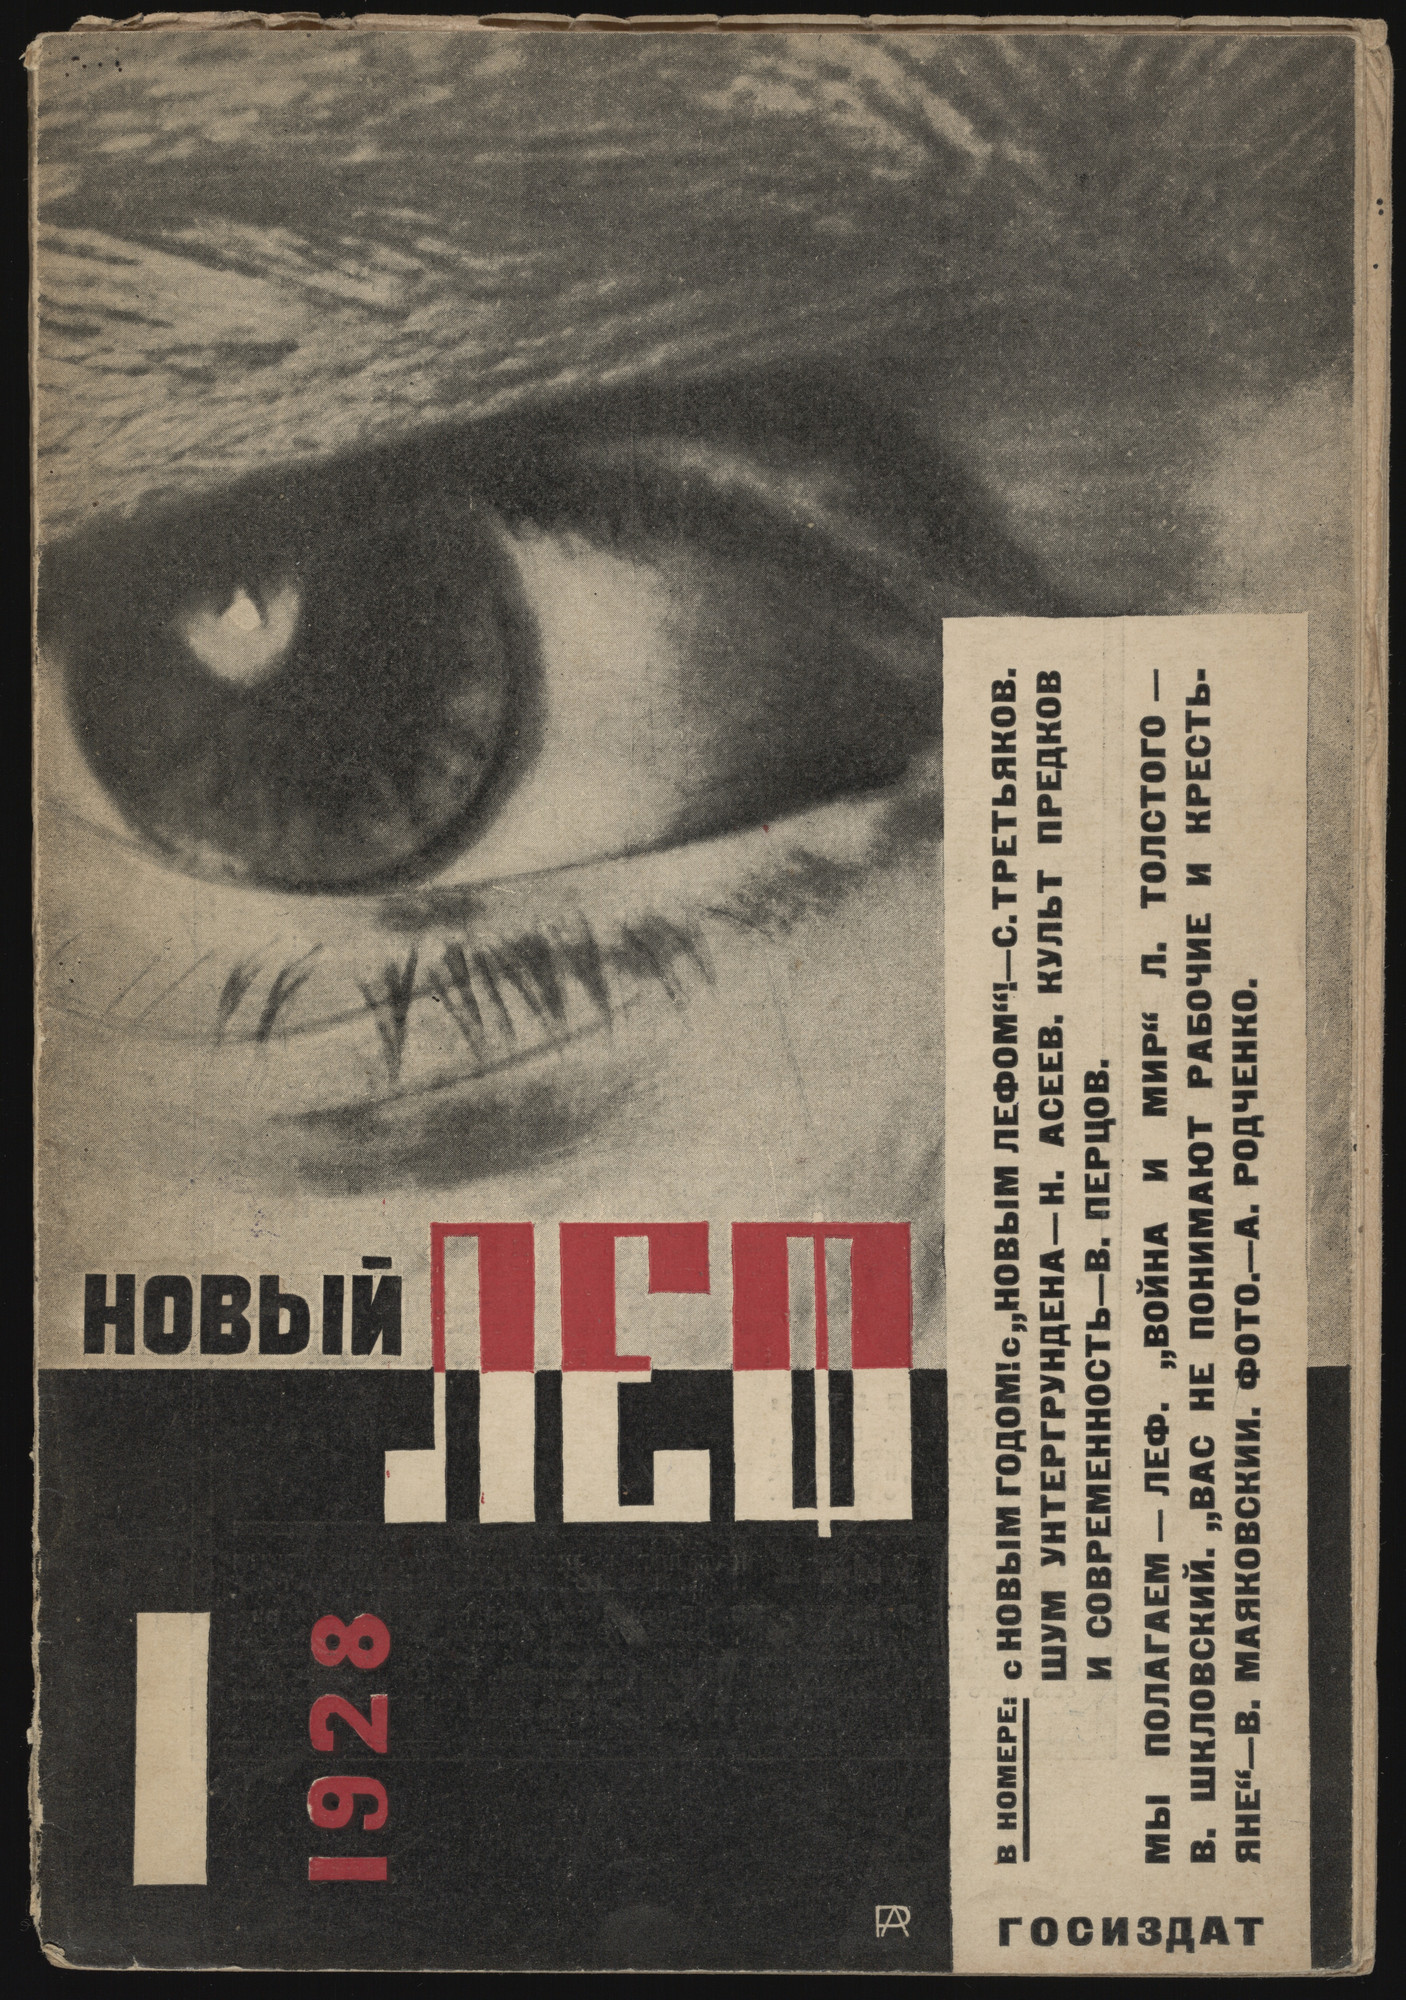 Aleksandr Rodchenko. Novyi LEF. Zhurnal levogo fronta iskusstv (New LEF: Journal of the Left Front of the Arts), no. 1. 1928